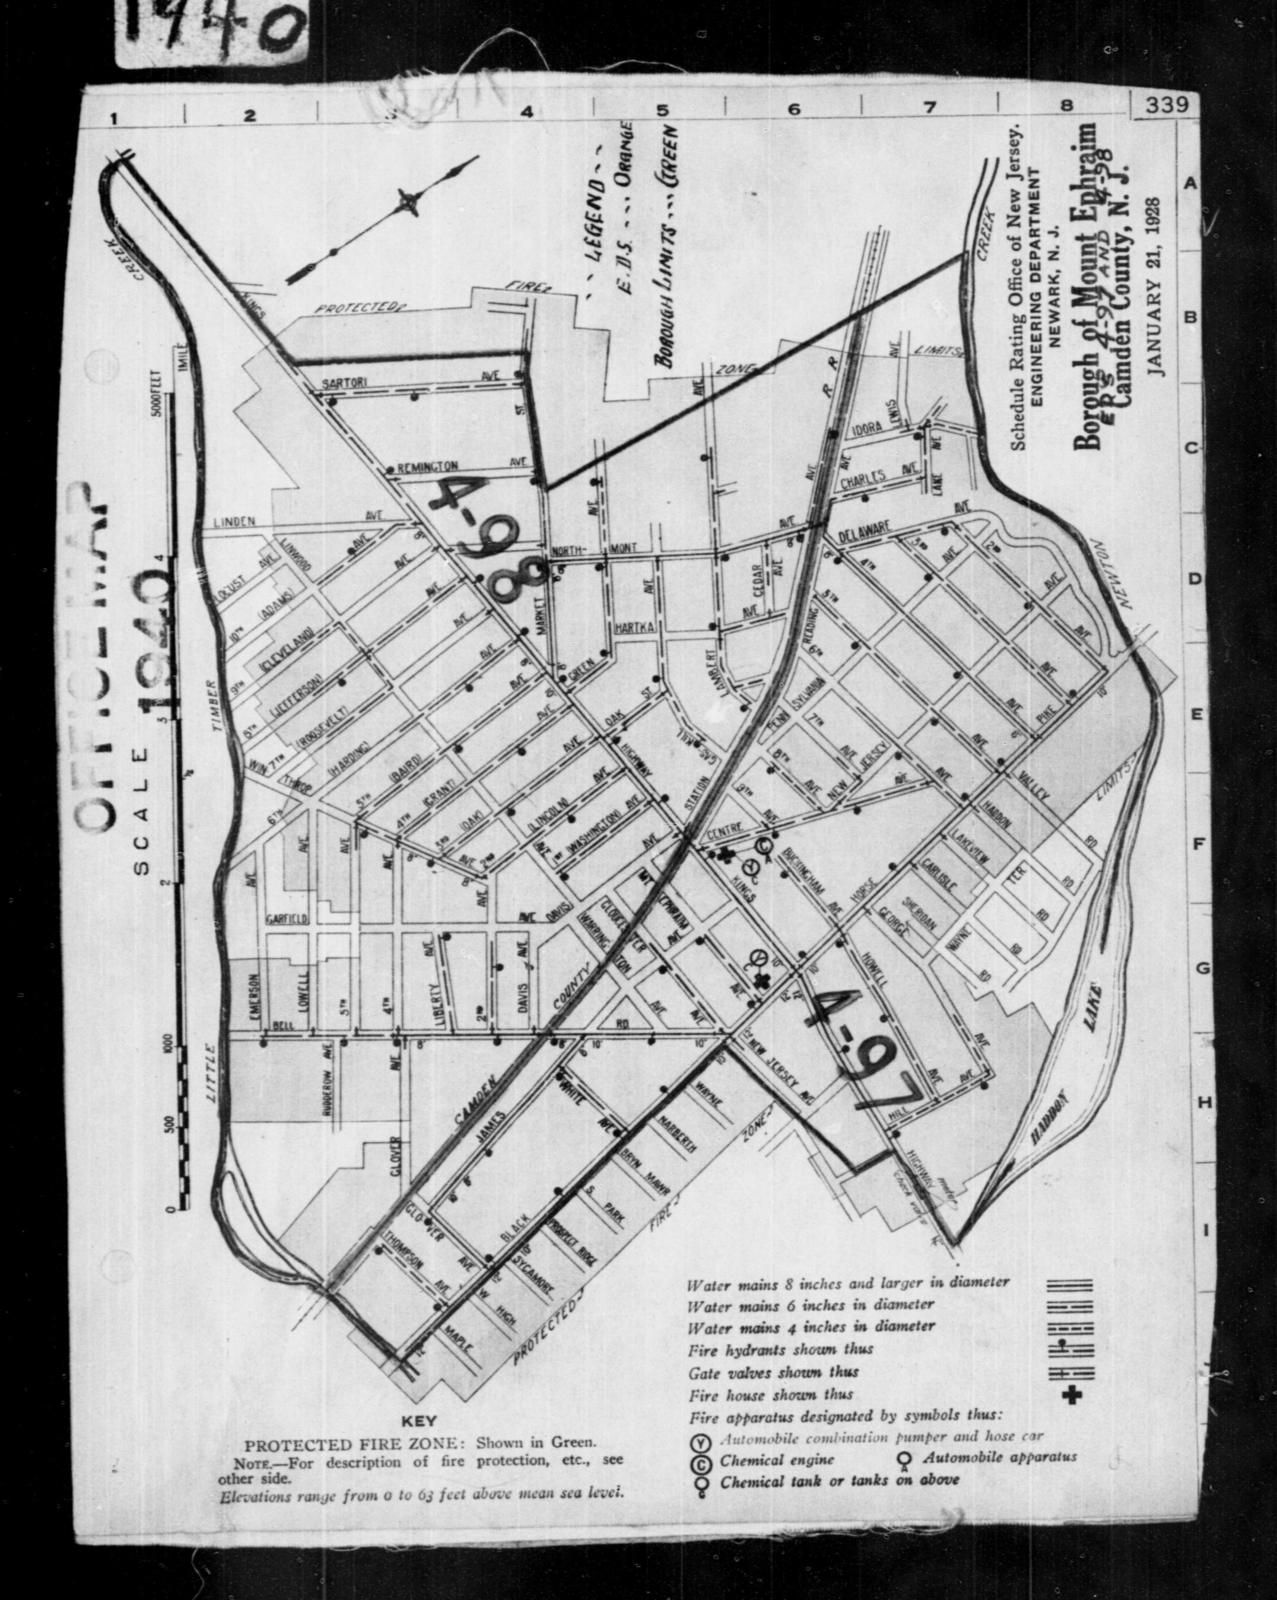 1940 Census Enumeration District Maps - New Jersey - Camden County on